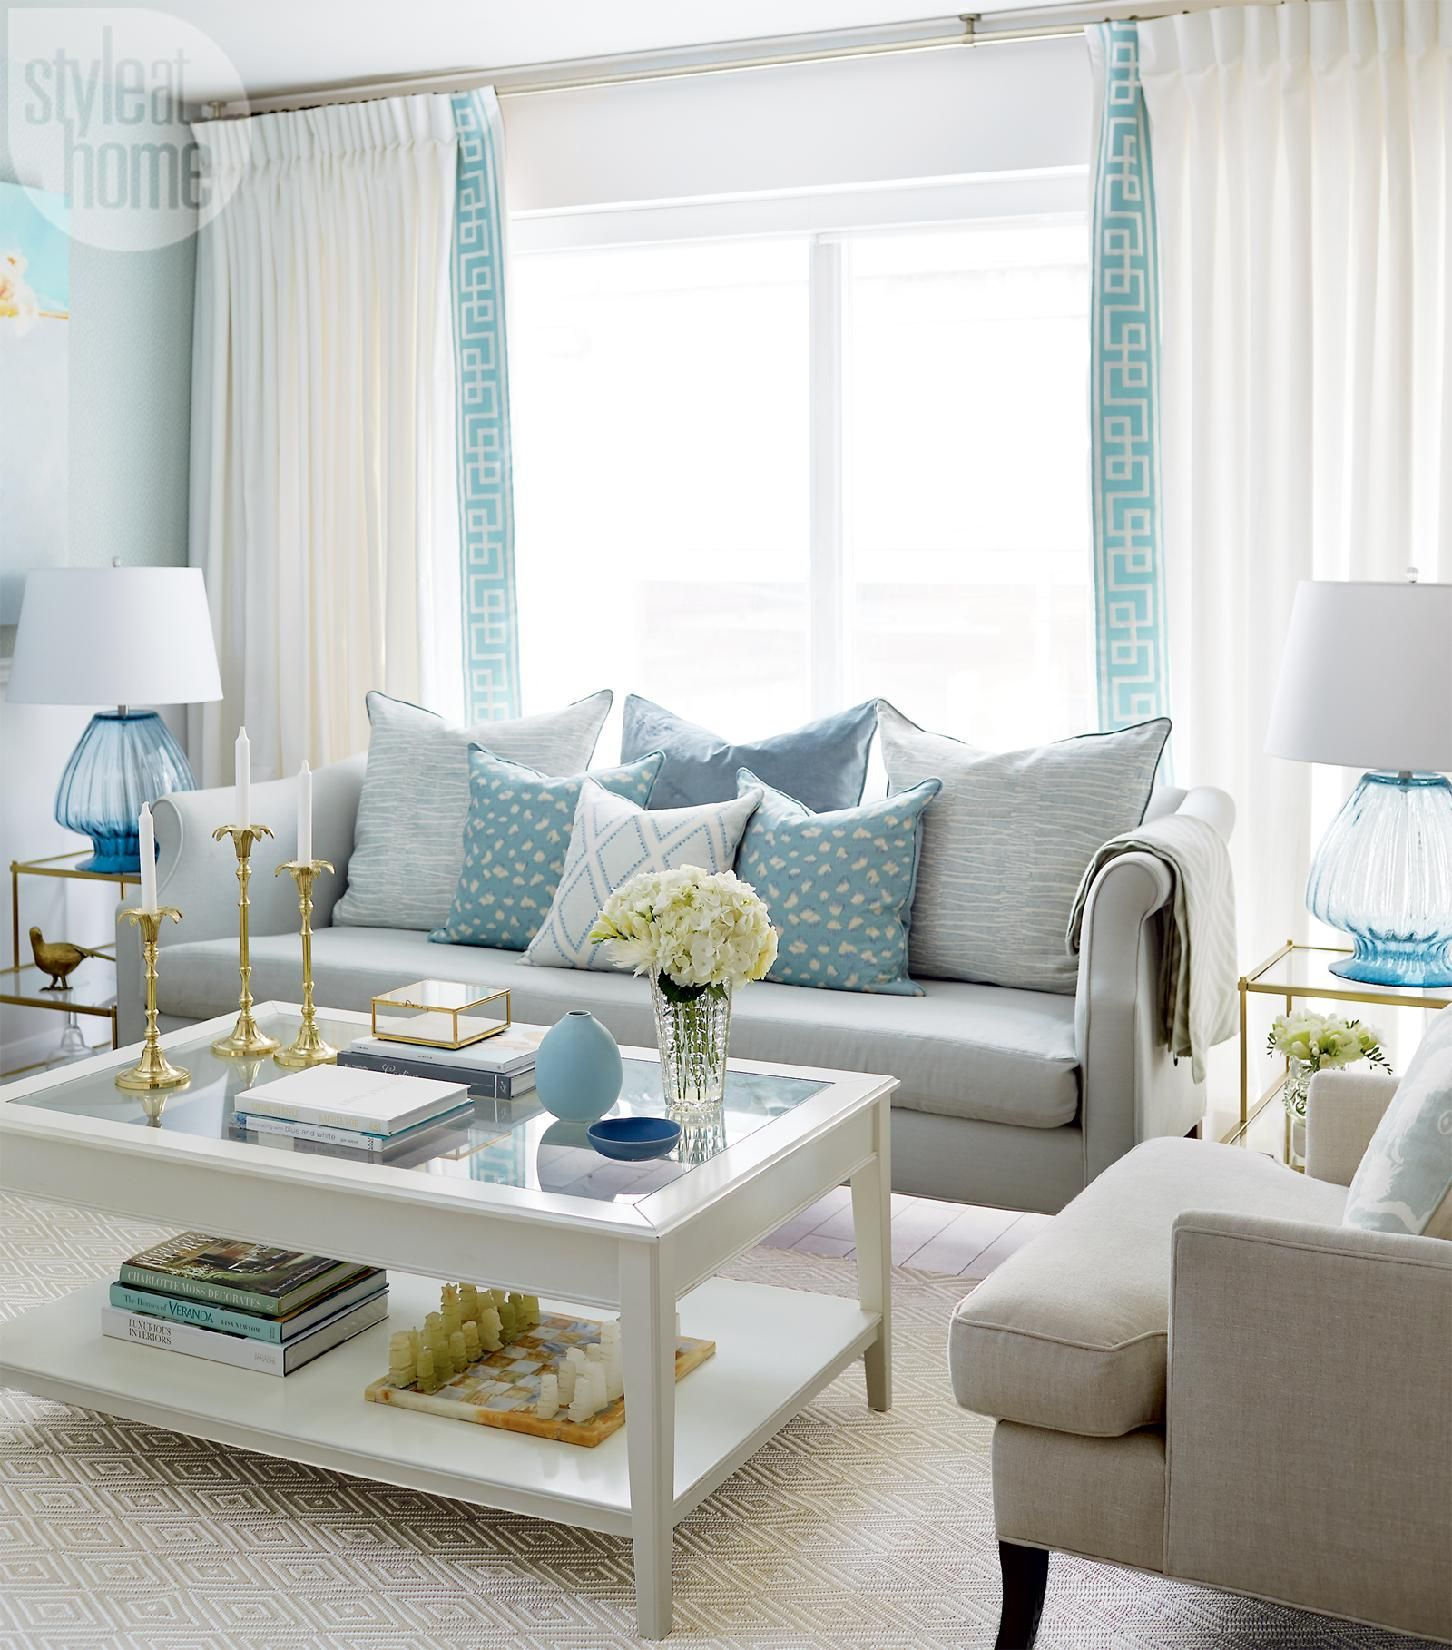 Budget Living Room Design Inspiration: Condo Tour: Refined Design Meets Eclectic Charm